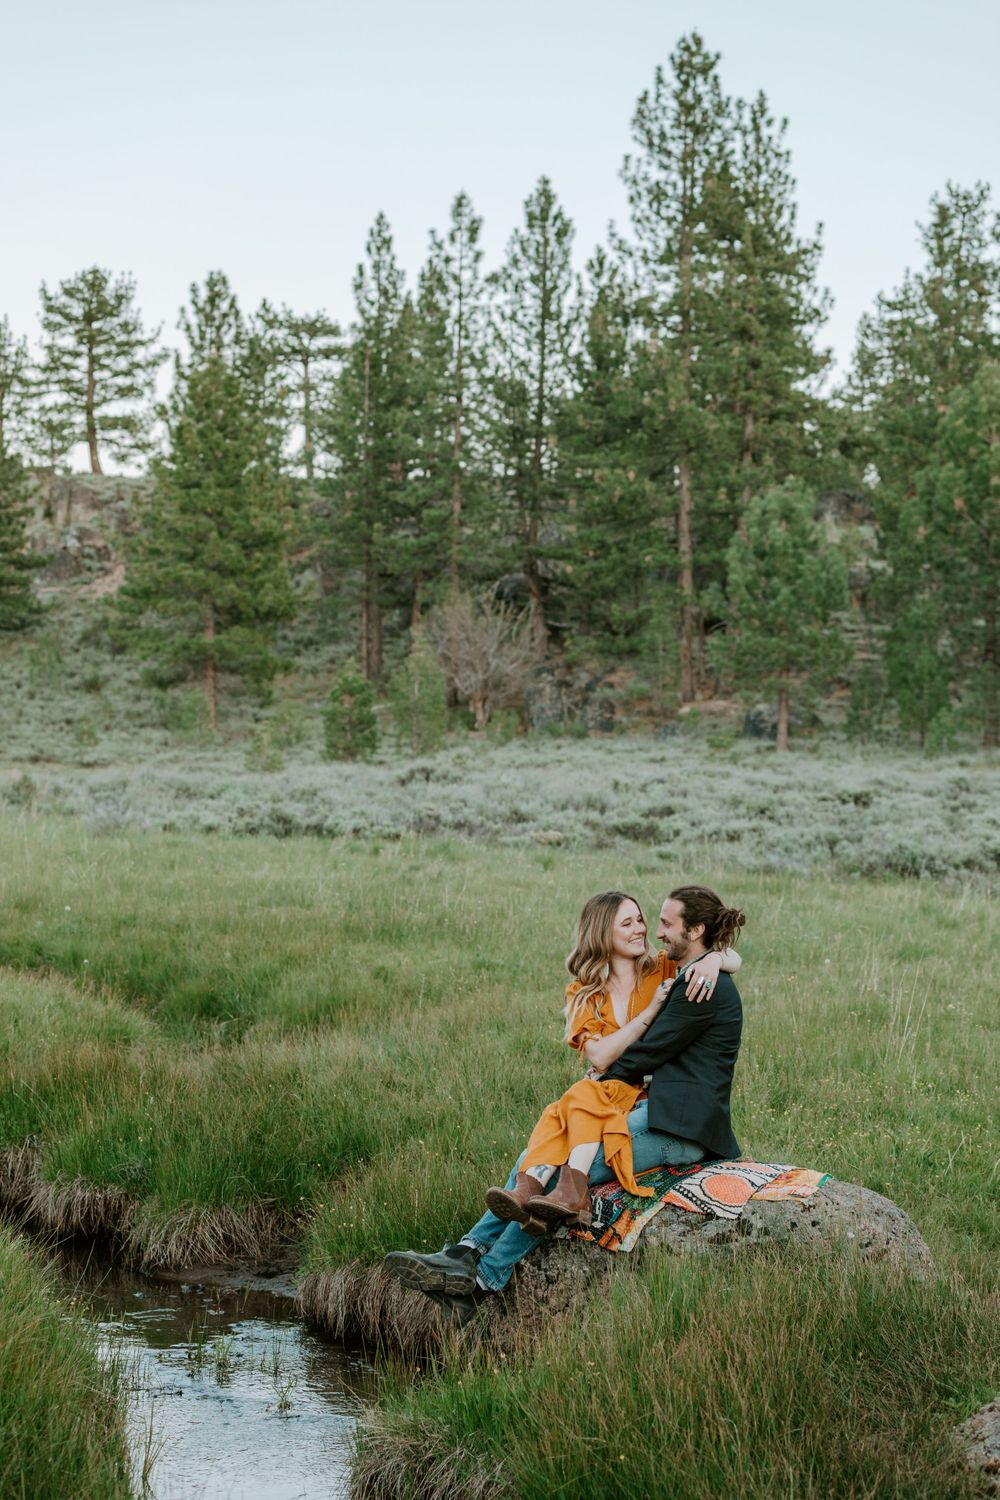 northern california engagement photographer photos meadows redwoods lake boho vintage